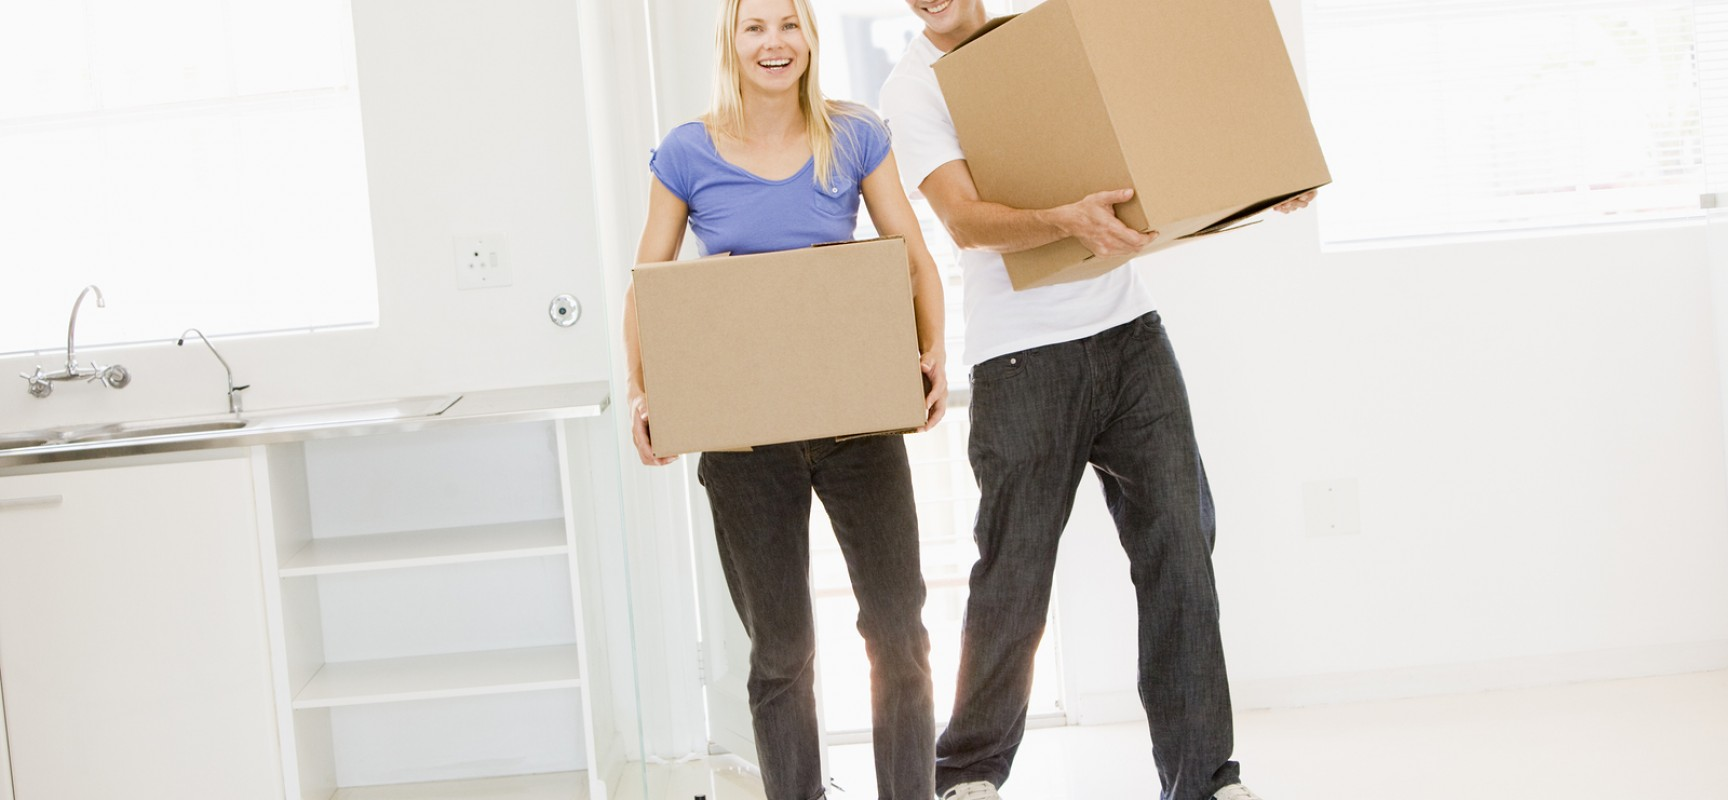 What You Need When Moving Into A New Apartment